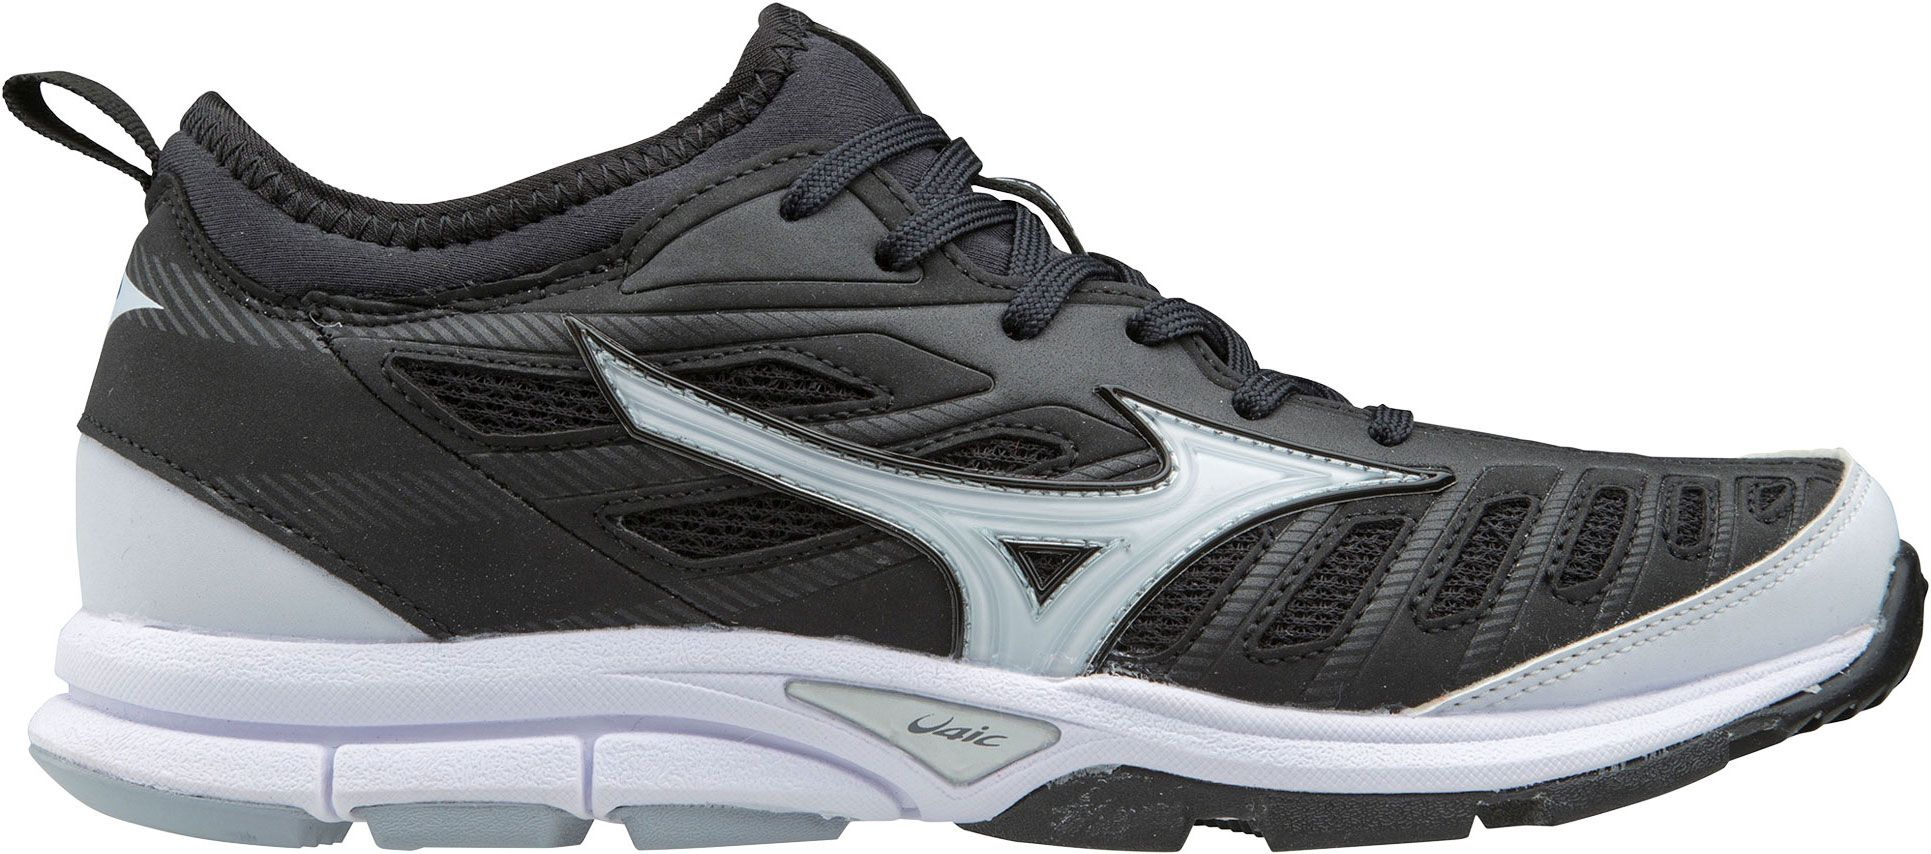 mizuno mens running shoes size 9 youth gold for hiking shoes